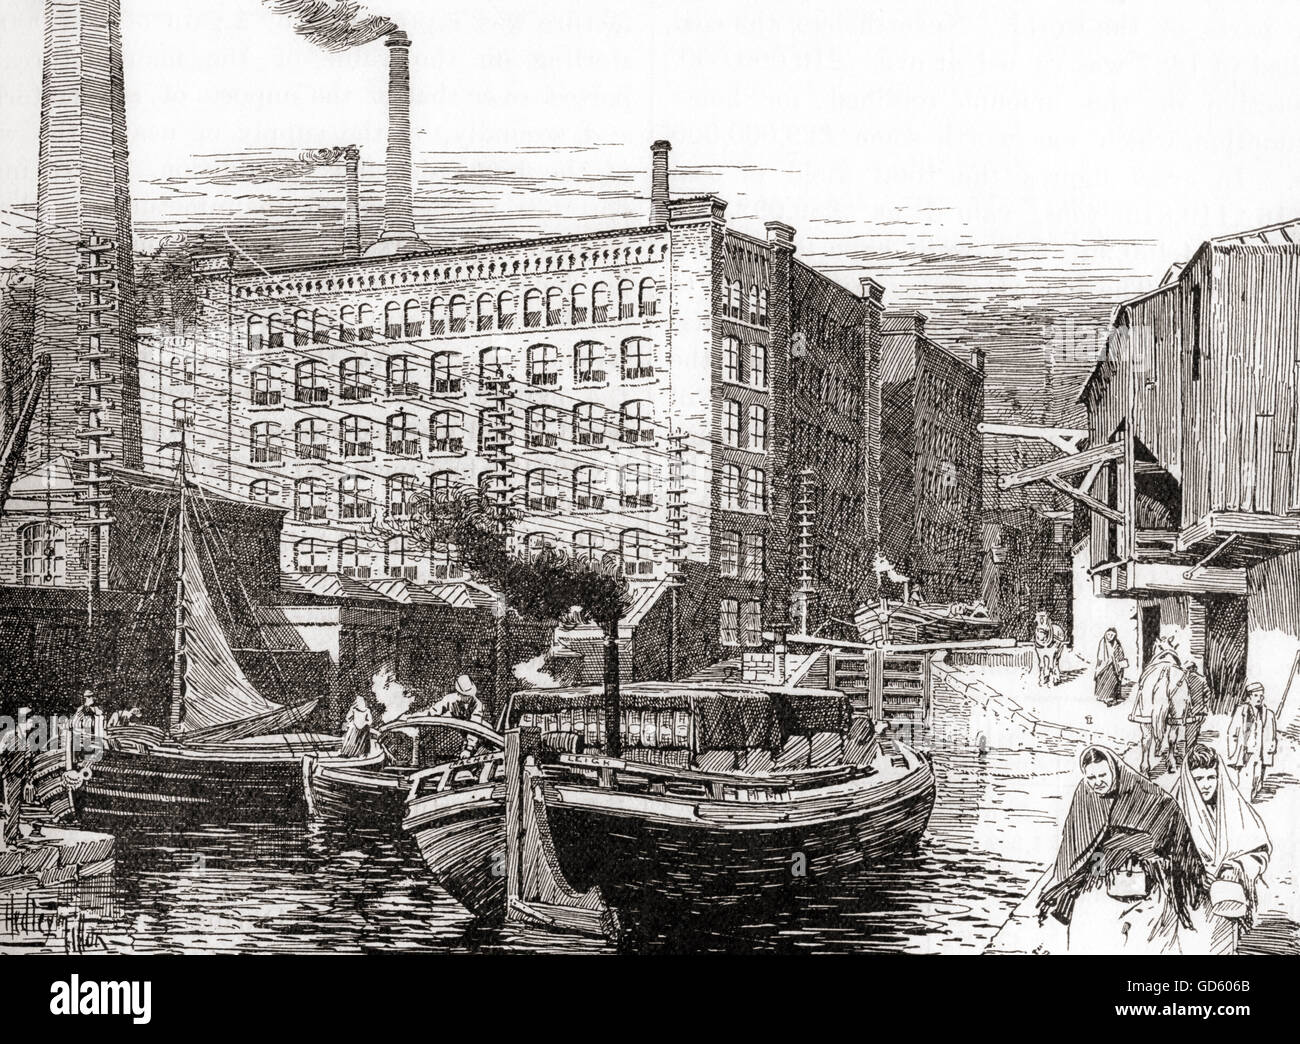 Cotton Mills, Miles Platting, Manchester, England in the 19th century. - Stock Image